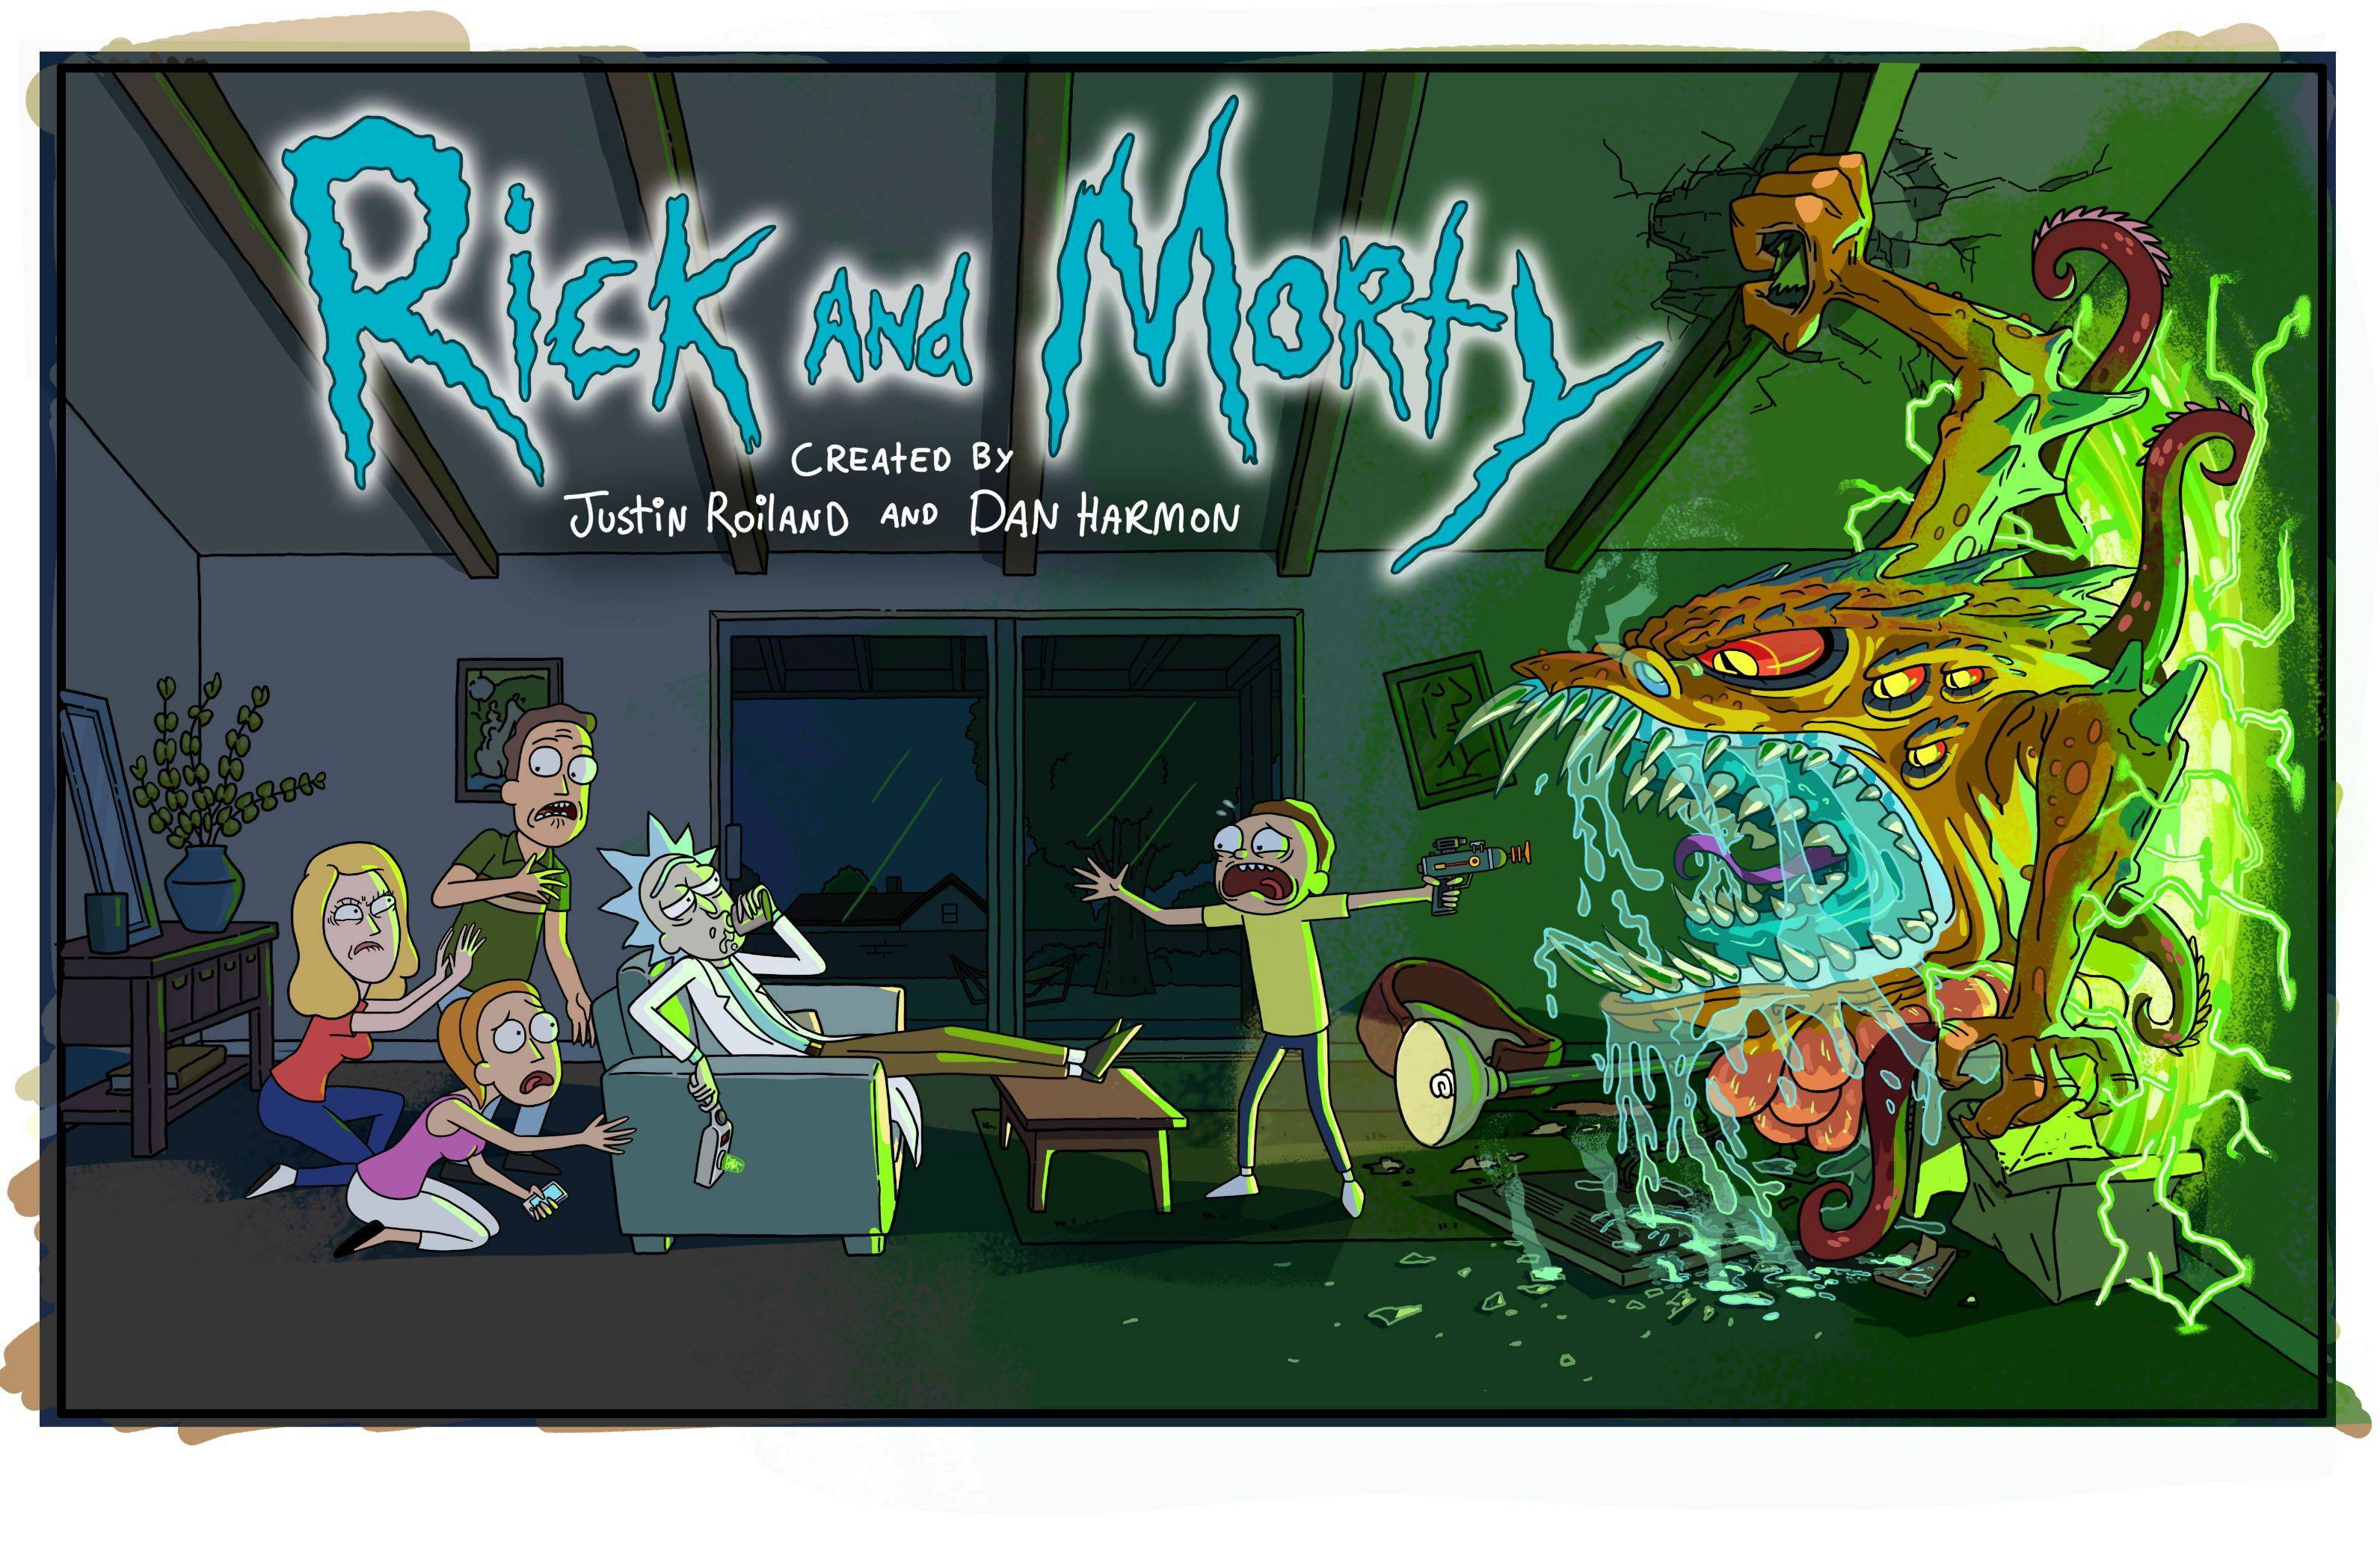 Rick and morty hd wallpapers for desktop download - Rick and morty download ...